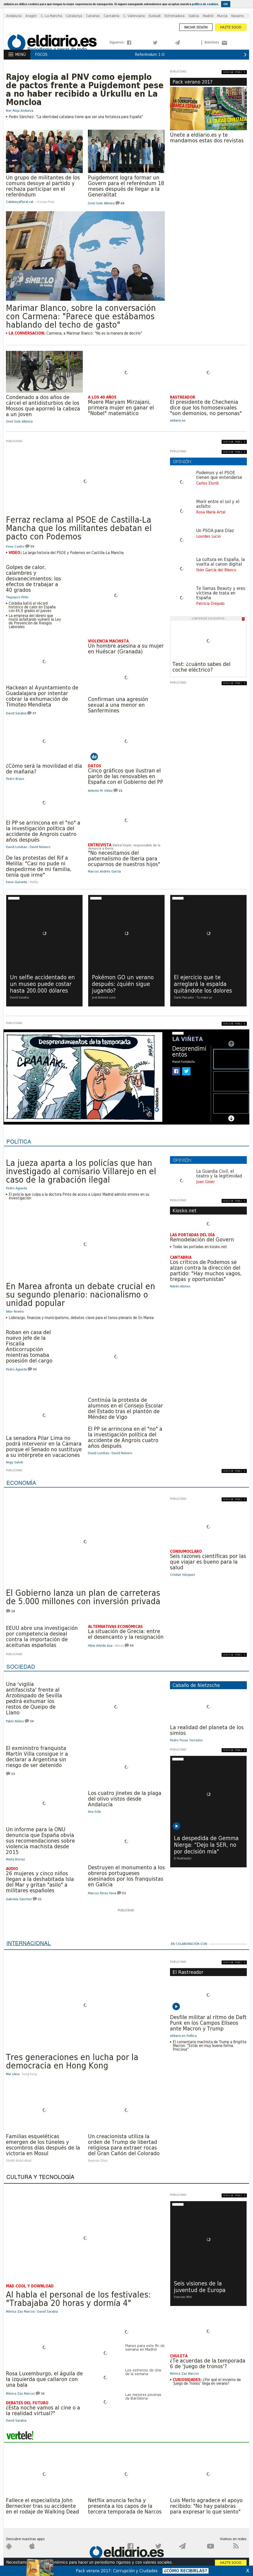 El Diario at Saturday July 15, 2017, 4:04 p.m. UTC